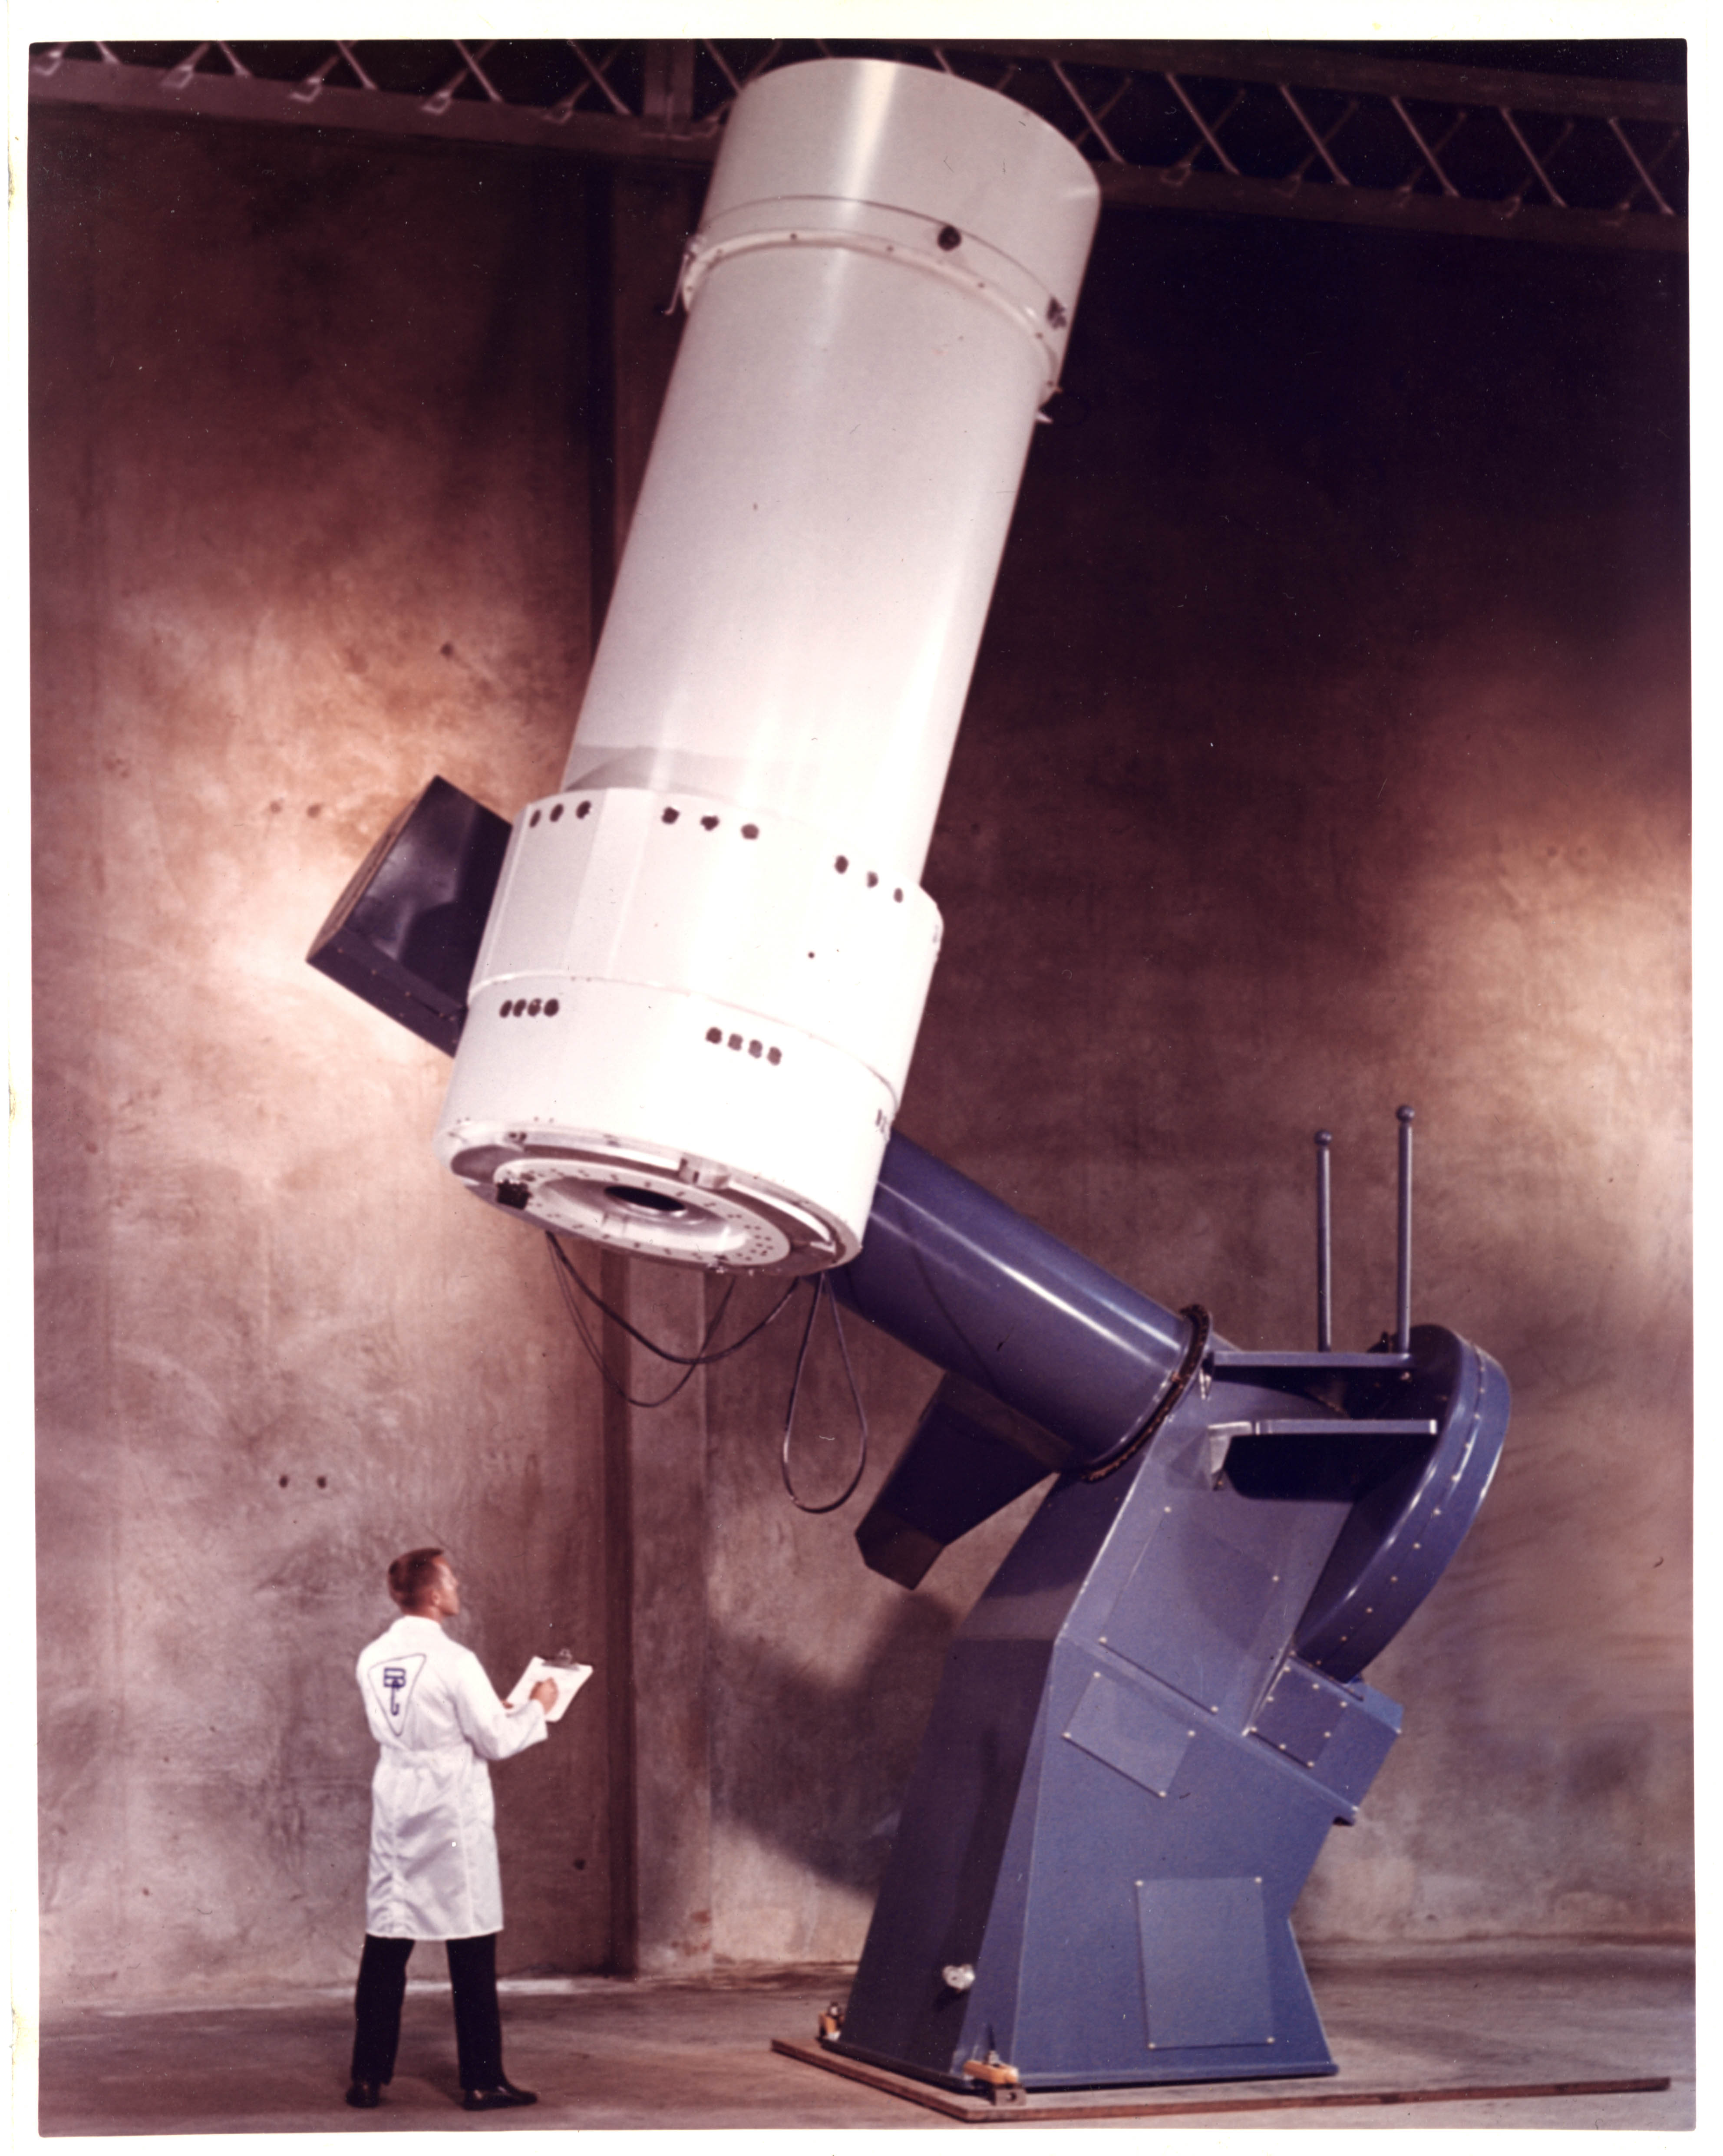 40 Inch 1 02 Meters Telescope For Siding Spring